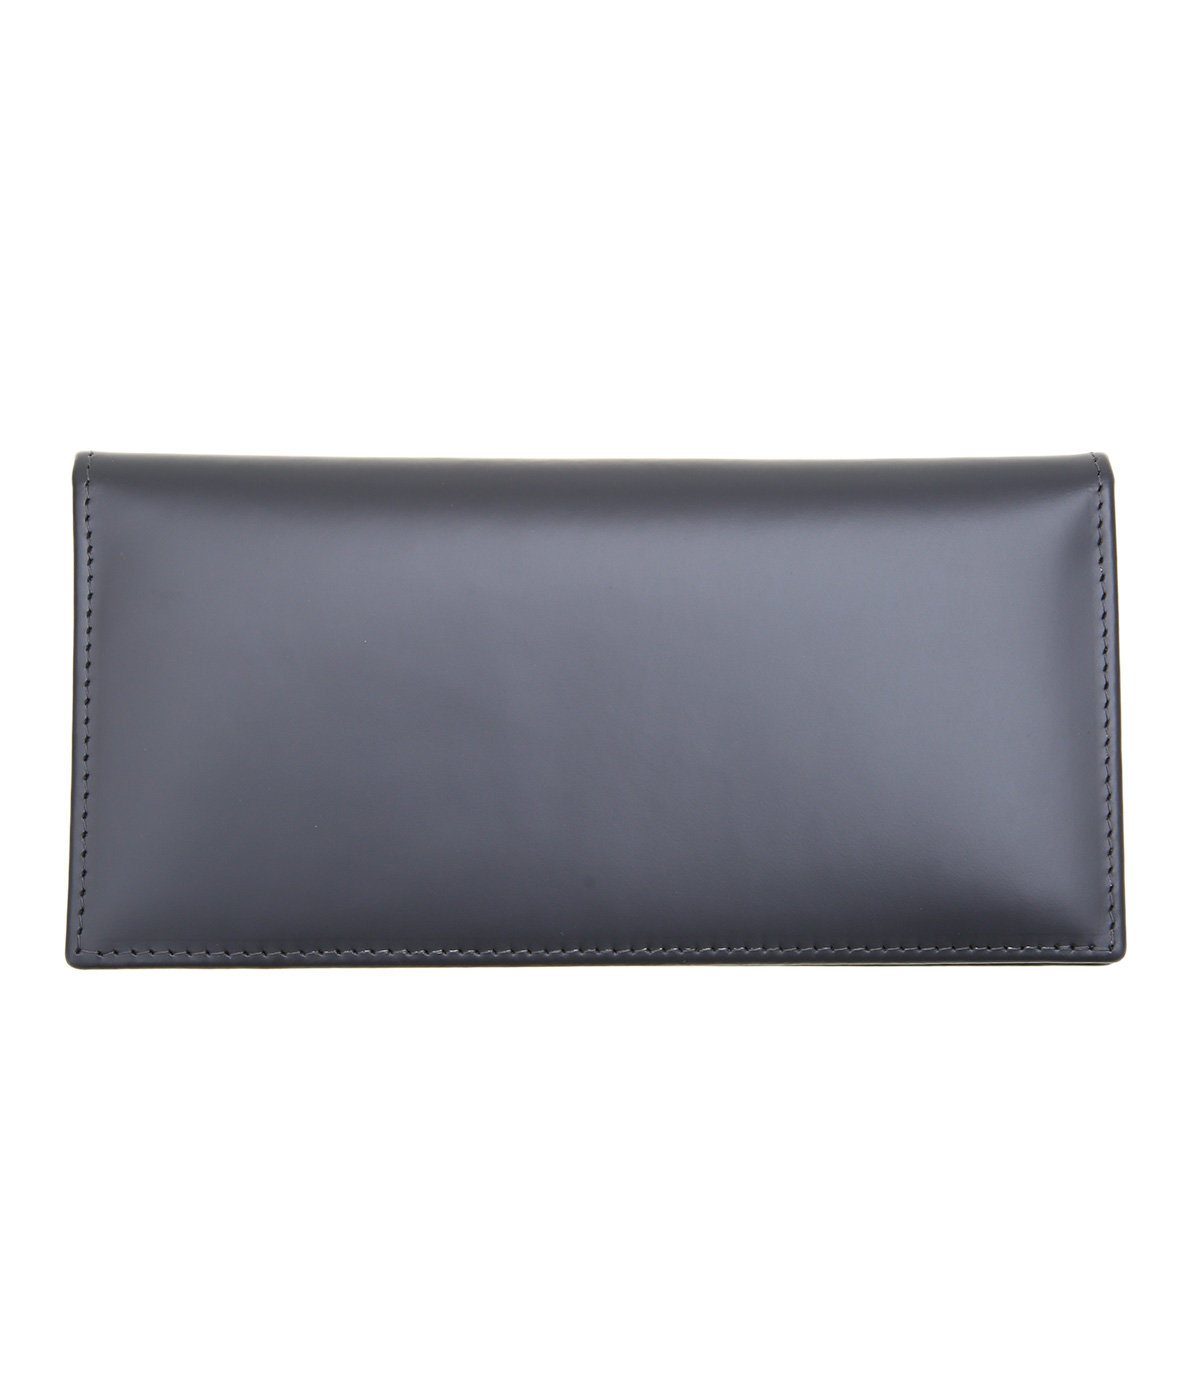 LONG WALLET / ZIPPED POCKET